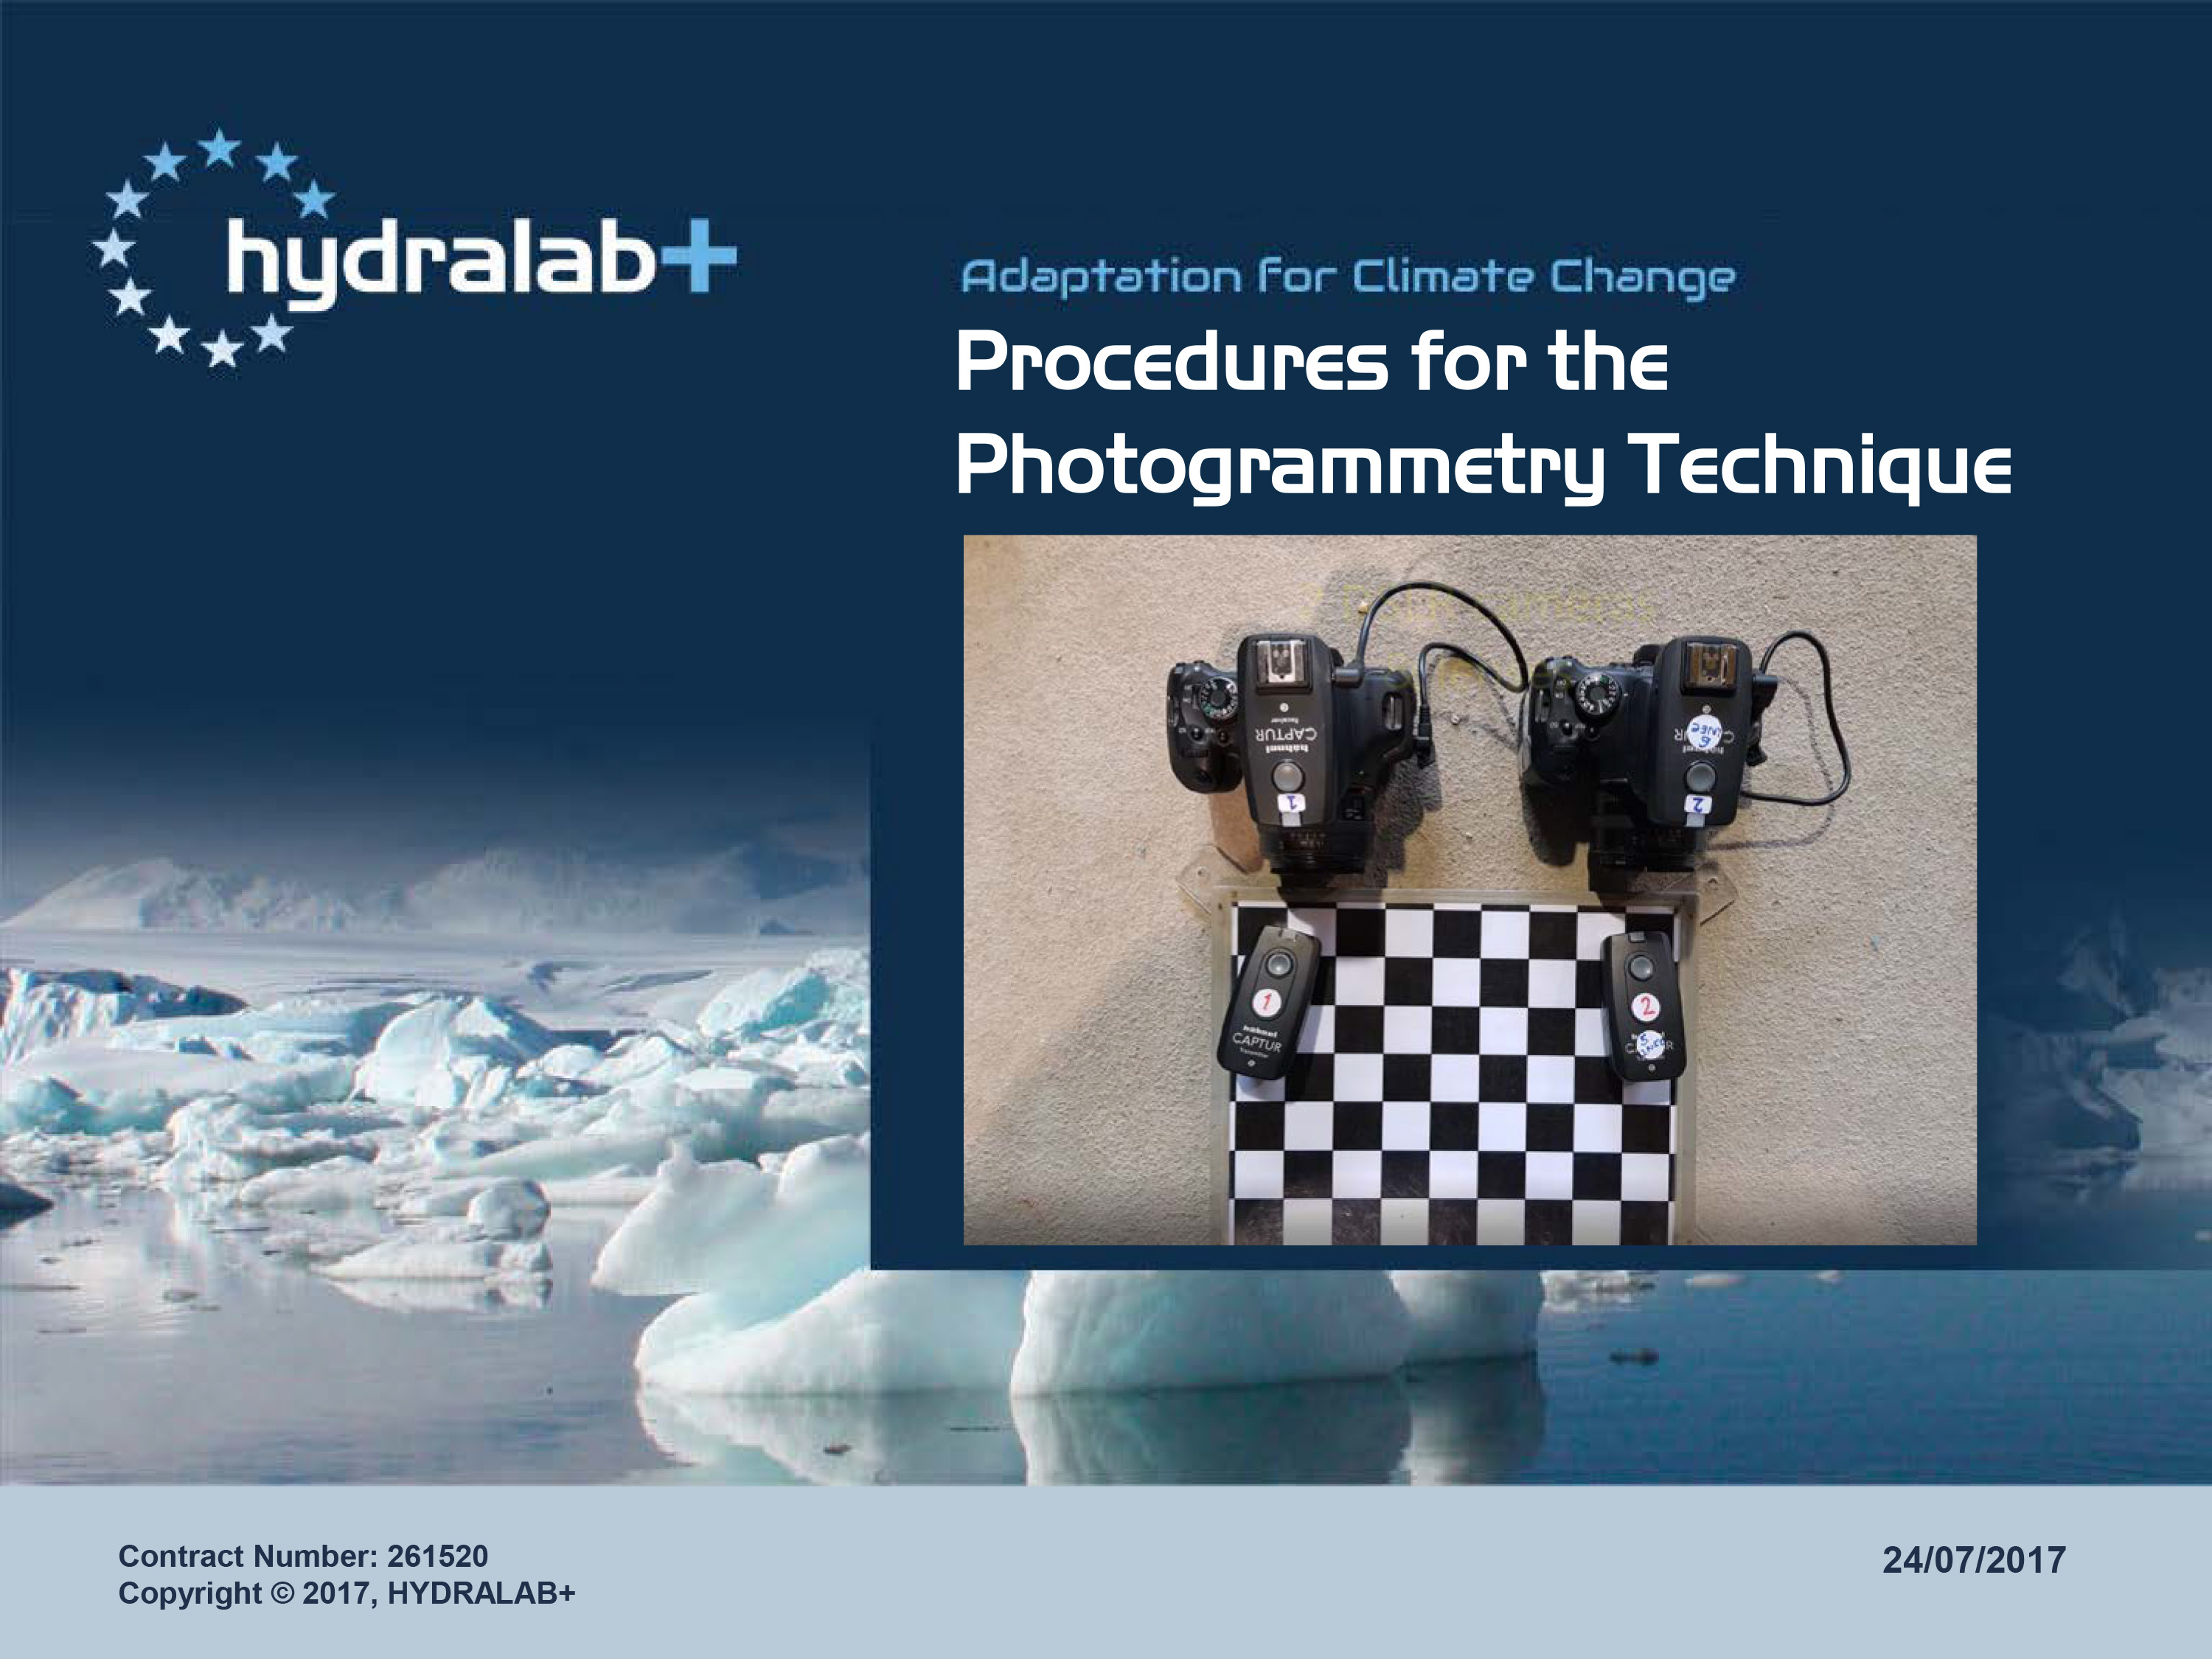 Set-up Photogrametry